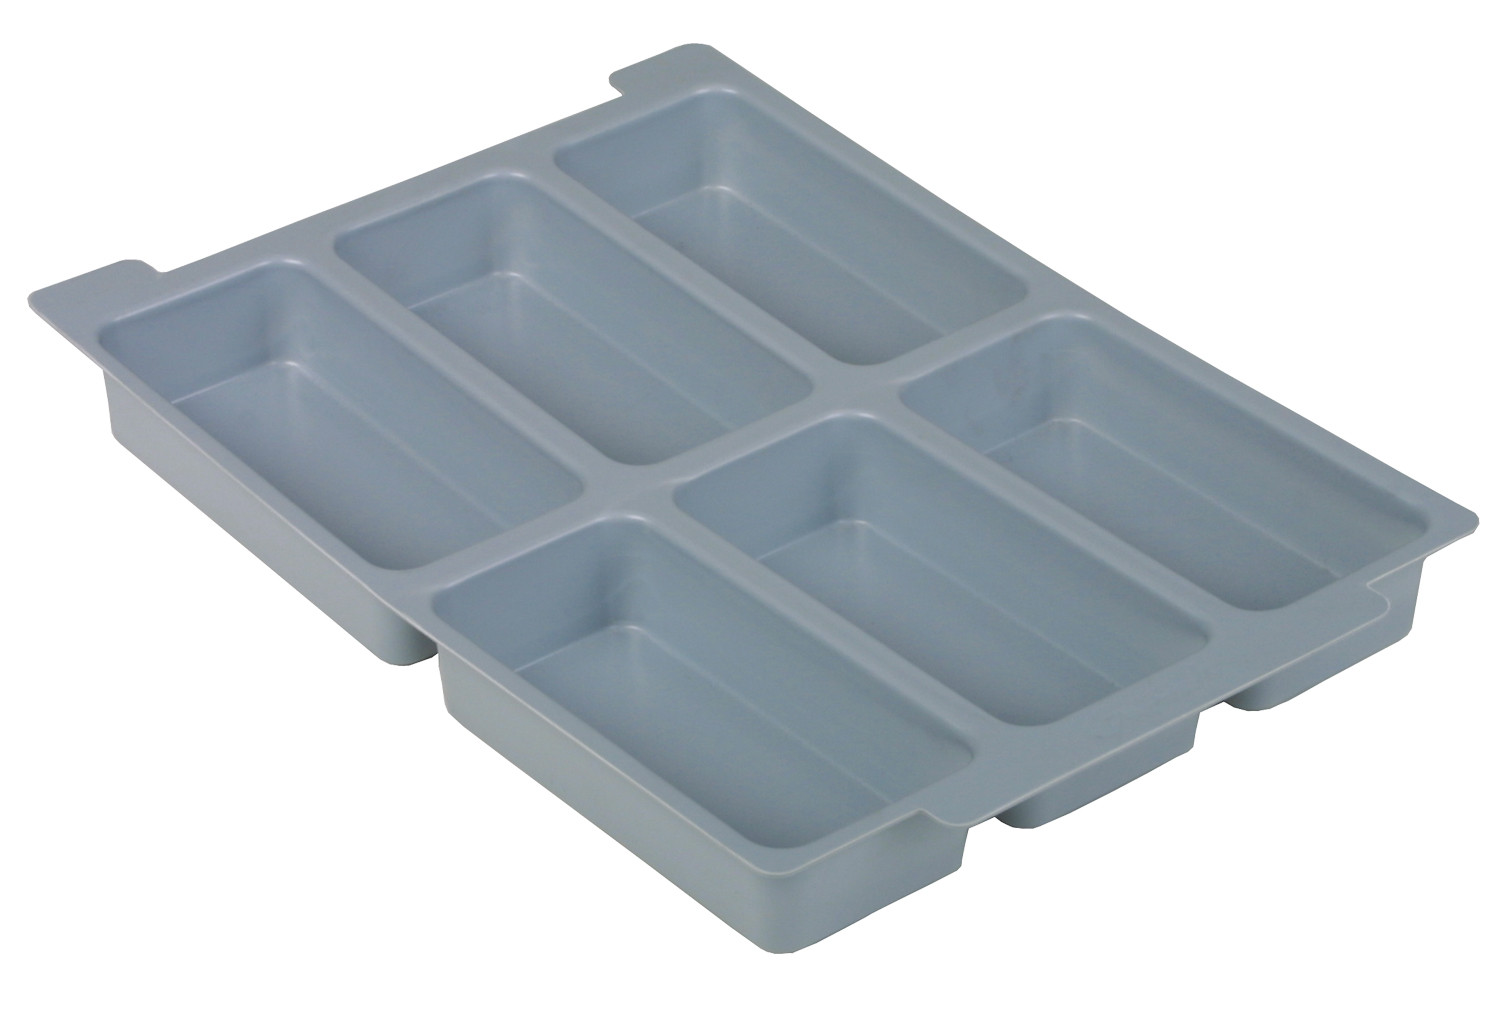 Pack of 6 Dividers For Gratnell Shallow Trays (6 Compartments)